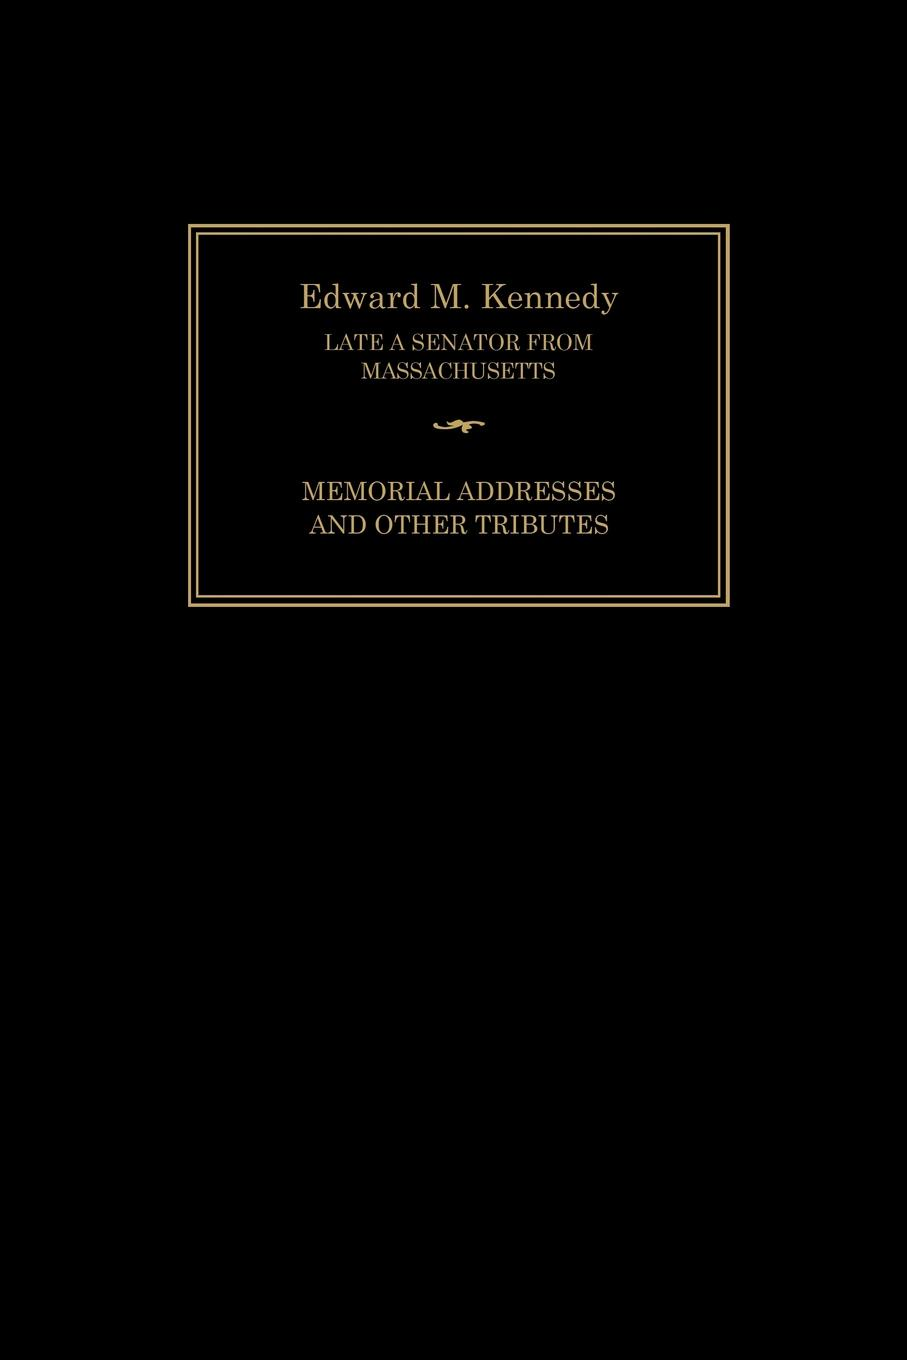 Senate of the United States of America, Joint Committee on Printing Edward M. Kennedy. Memorial Addresses and Other Tributes, 1932-2009 the kennedy years